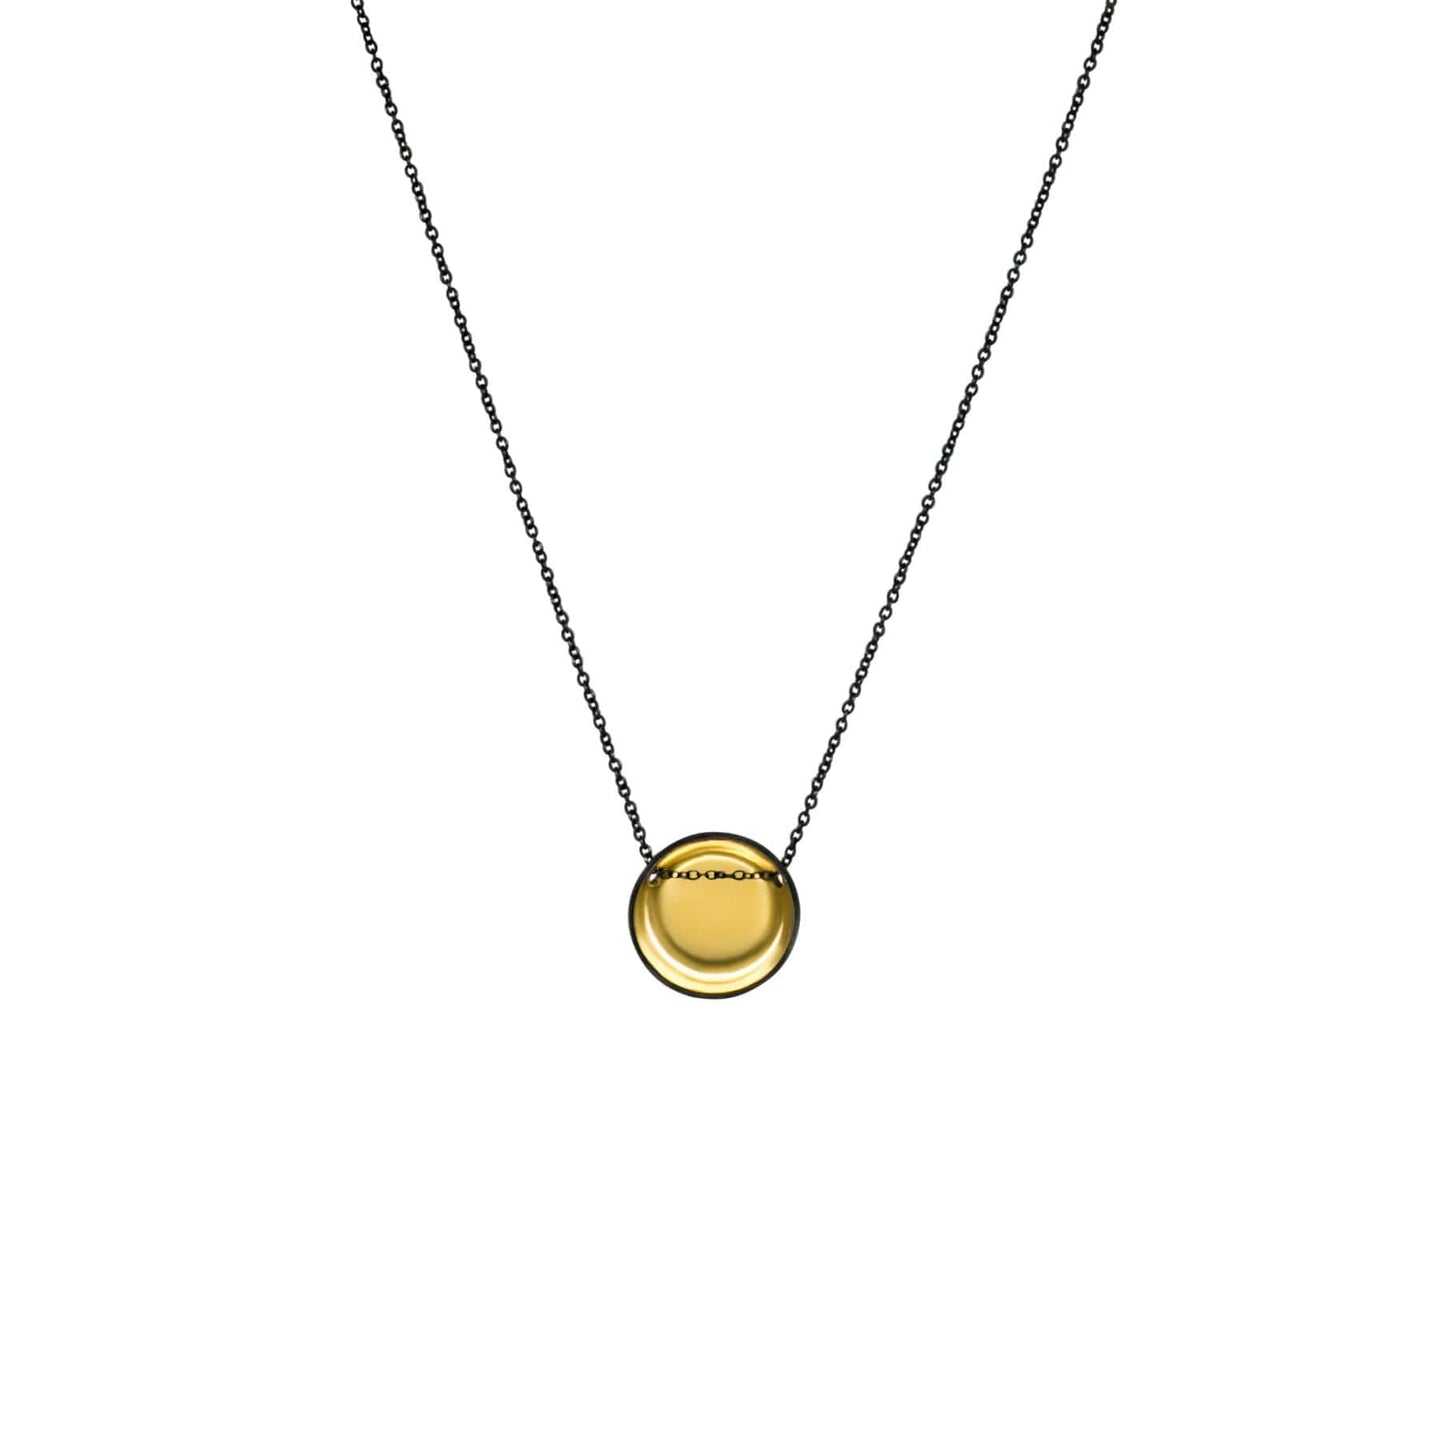 Gold and Charcoal Bowl Necklace